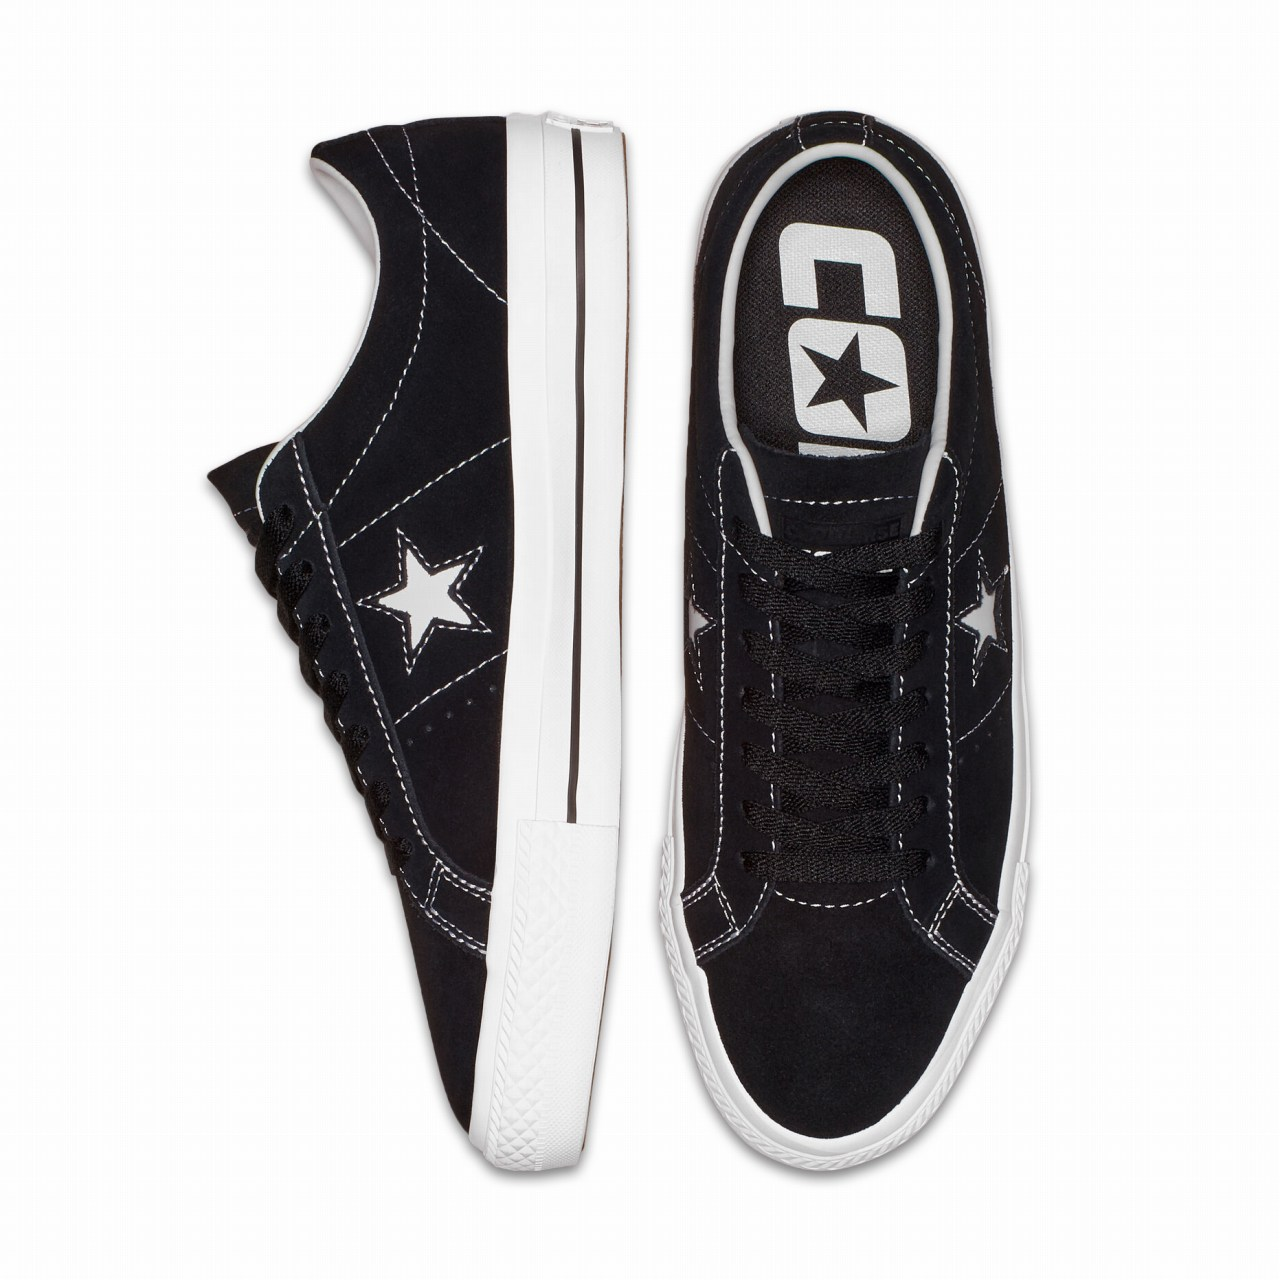 CONVERSE : CONS One Star Pro